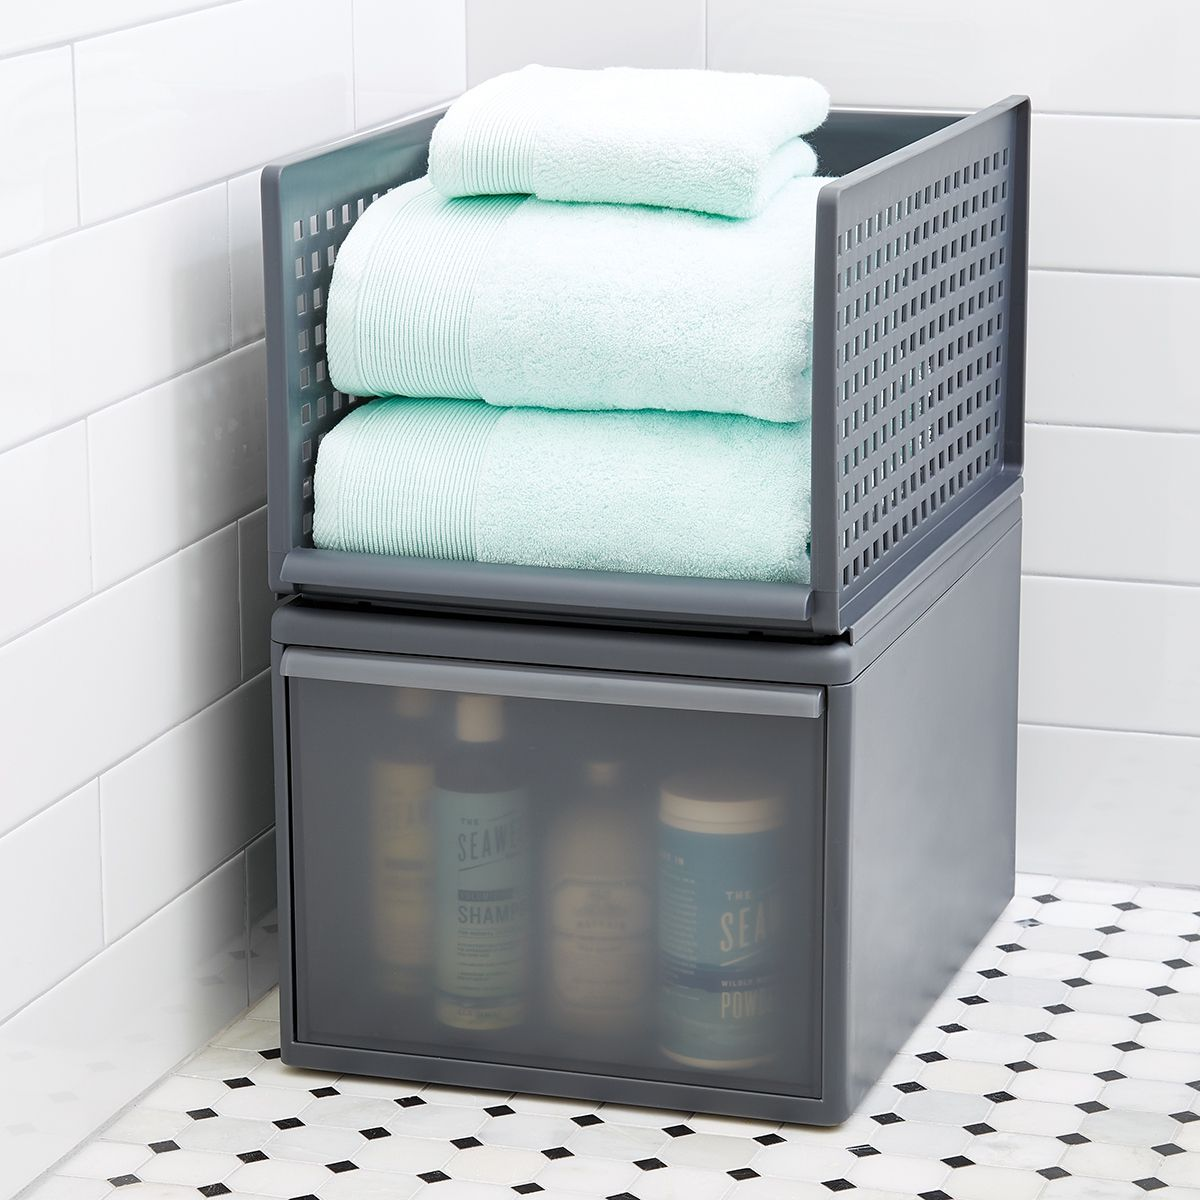 Optimal Usage Of Space And Items For Small Bathroom Ideas: Stacking Drawers Are A Great Way To Make Use Of Wasted